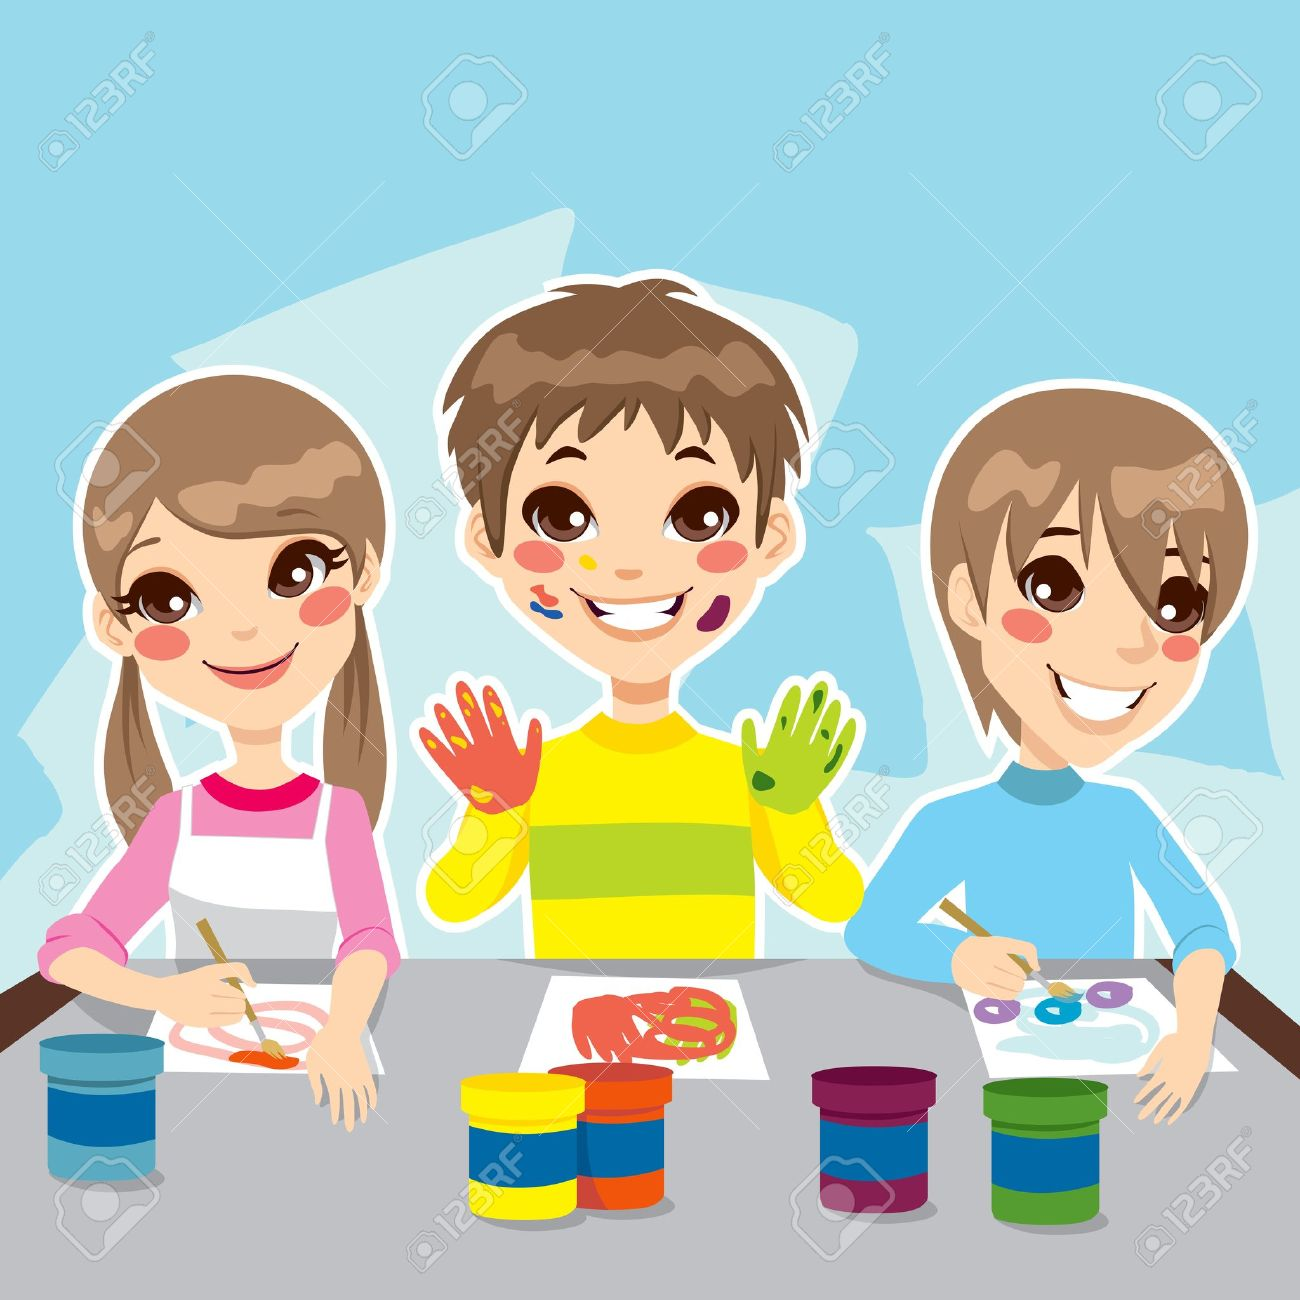 Coloring games youtube - Three Young Kids Having Fun Painting Colorful Drawings Stock Vector 18724964